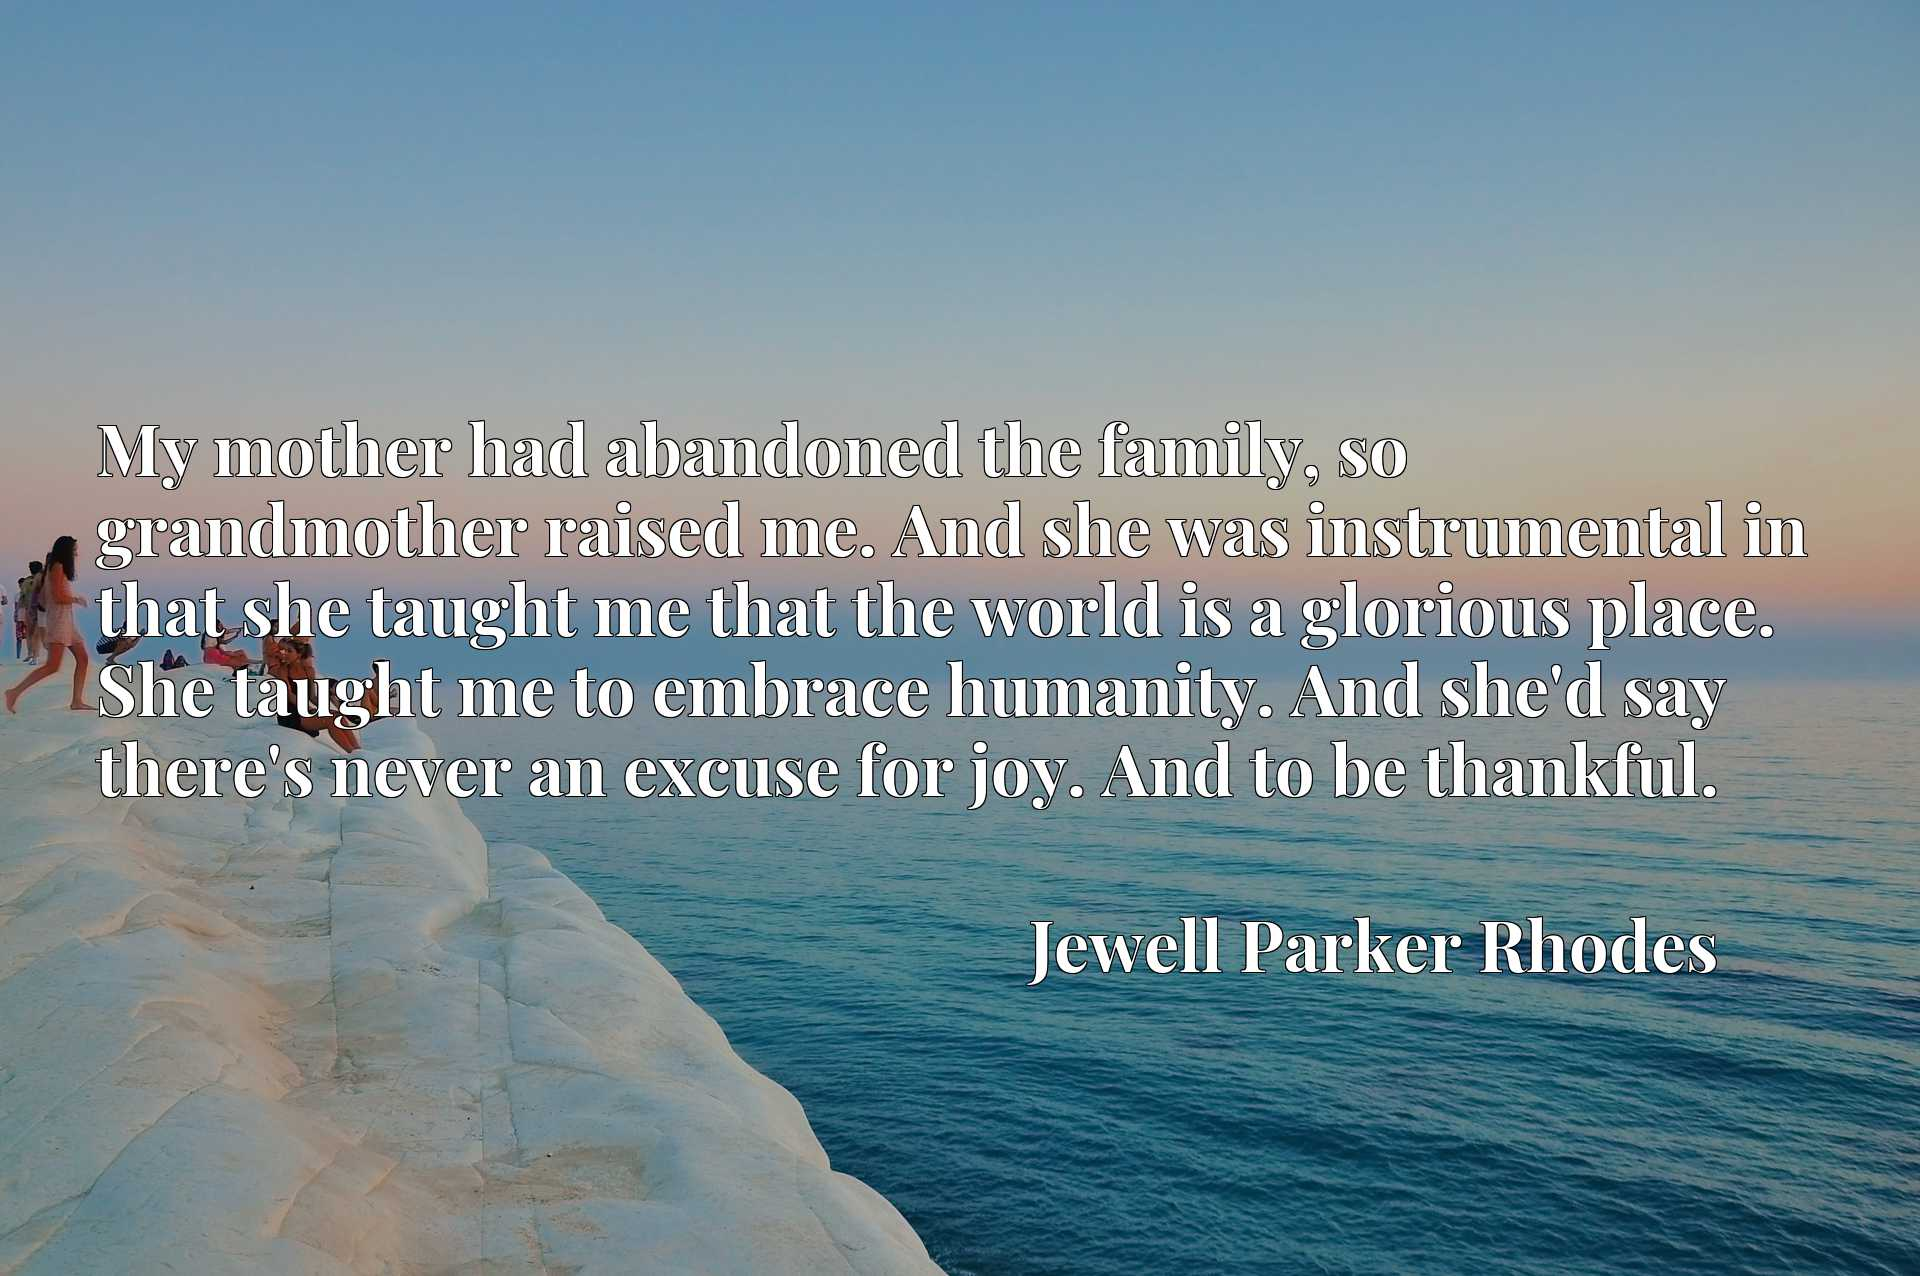 My mother had abandoned the family, so grandmother raised me. And she was instrumental in that she taught me that the world is a glorious place. She taught me to embrace humanity. And she'd say there's never an excuse for joy. And to be thankful.